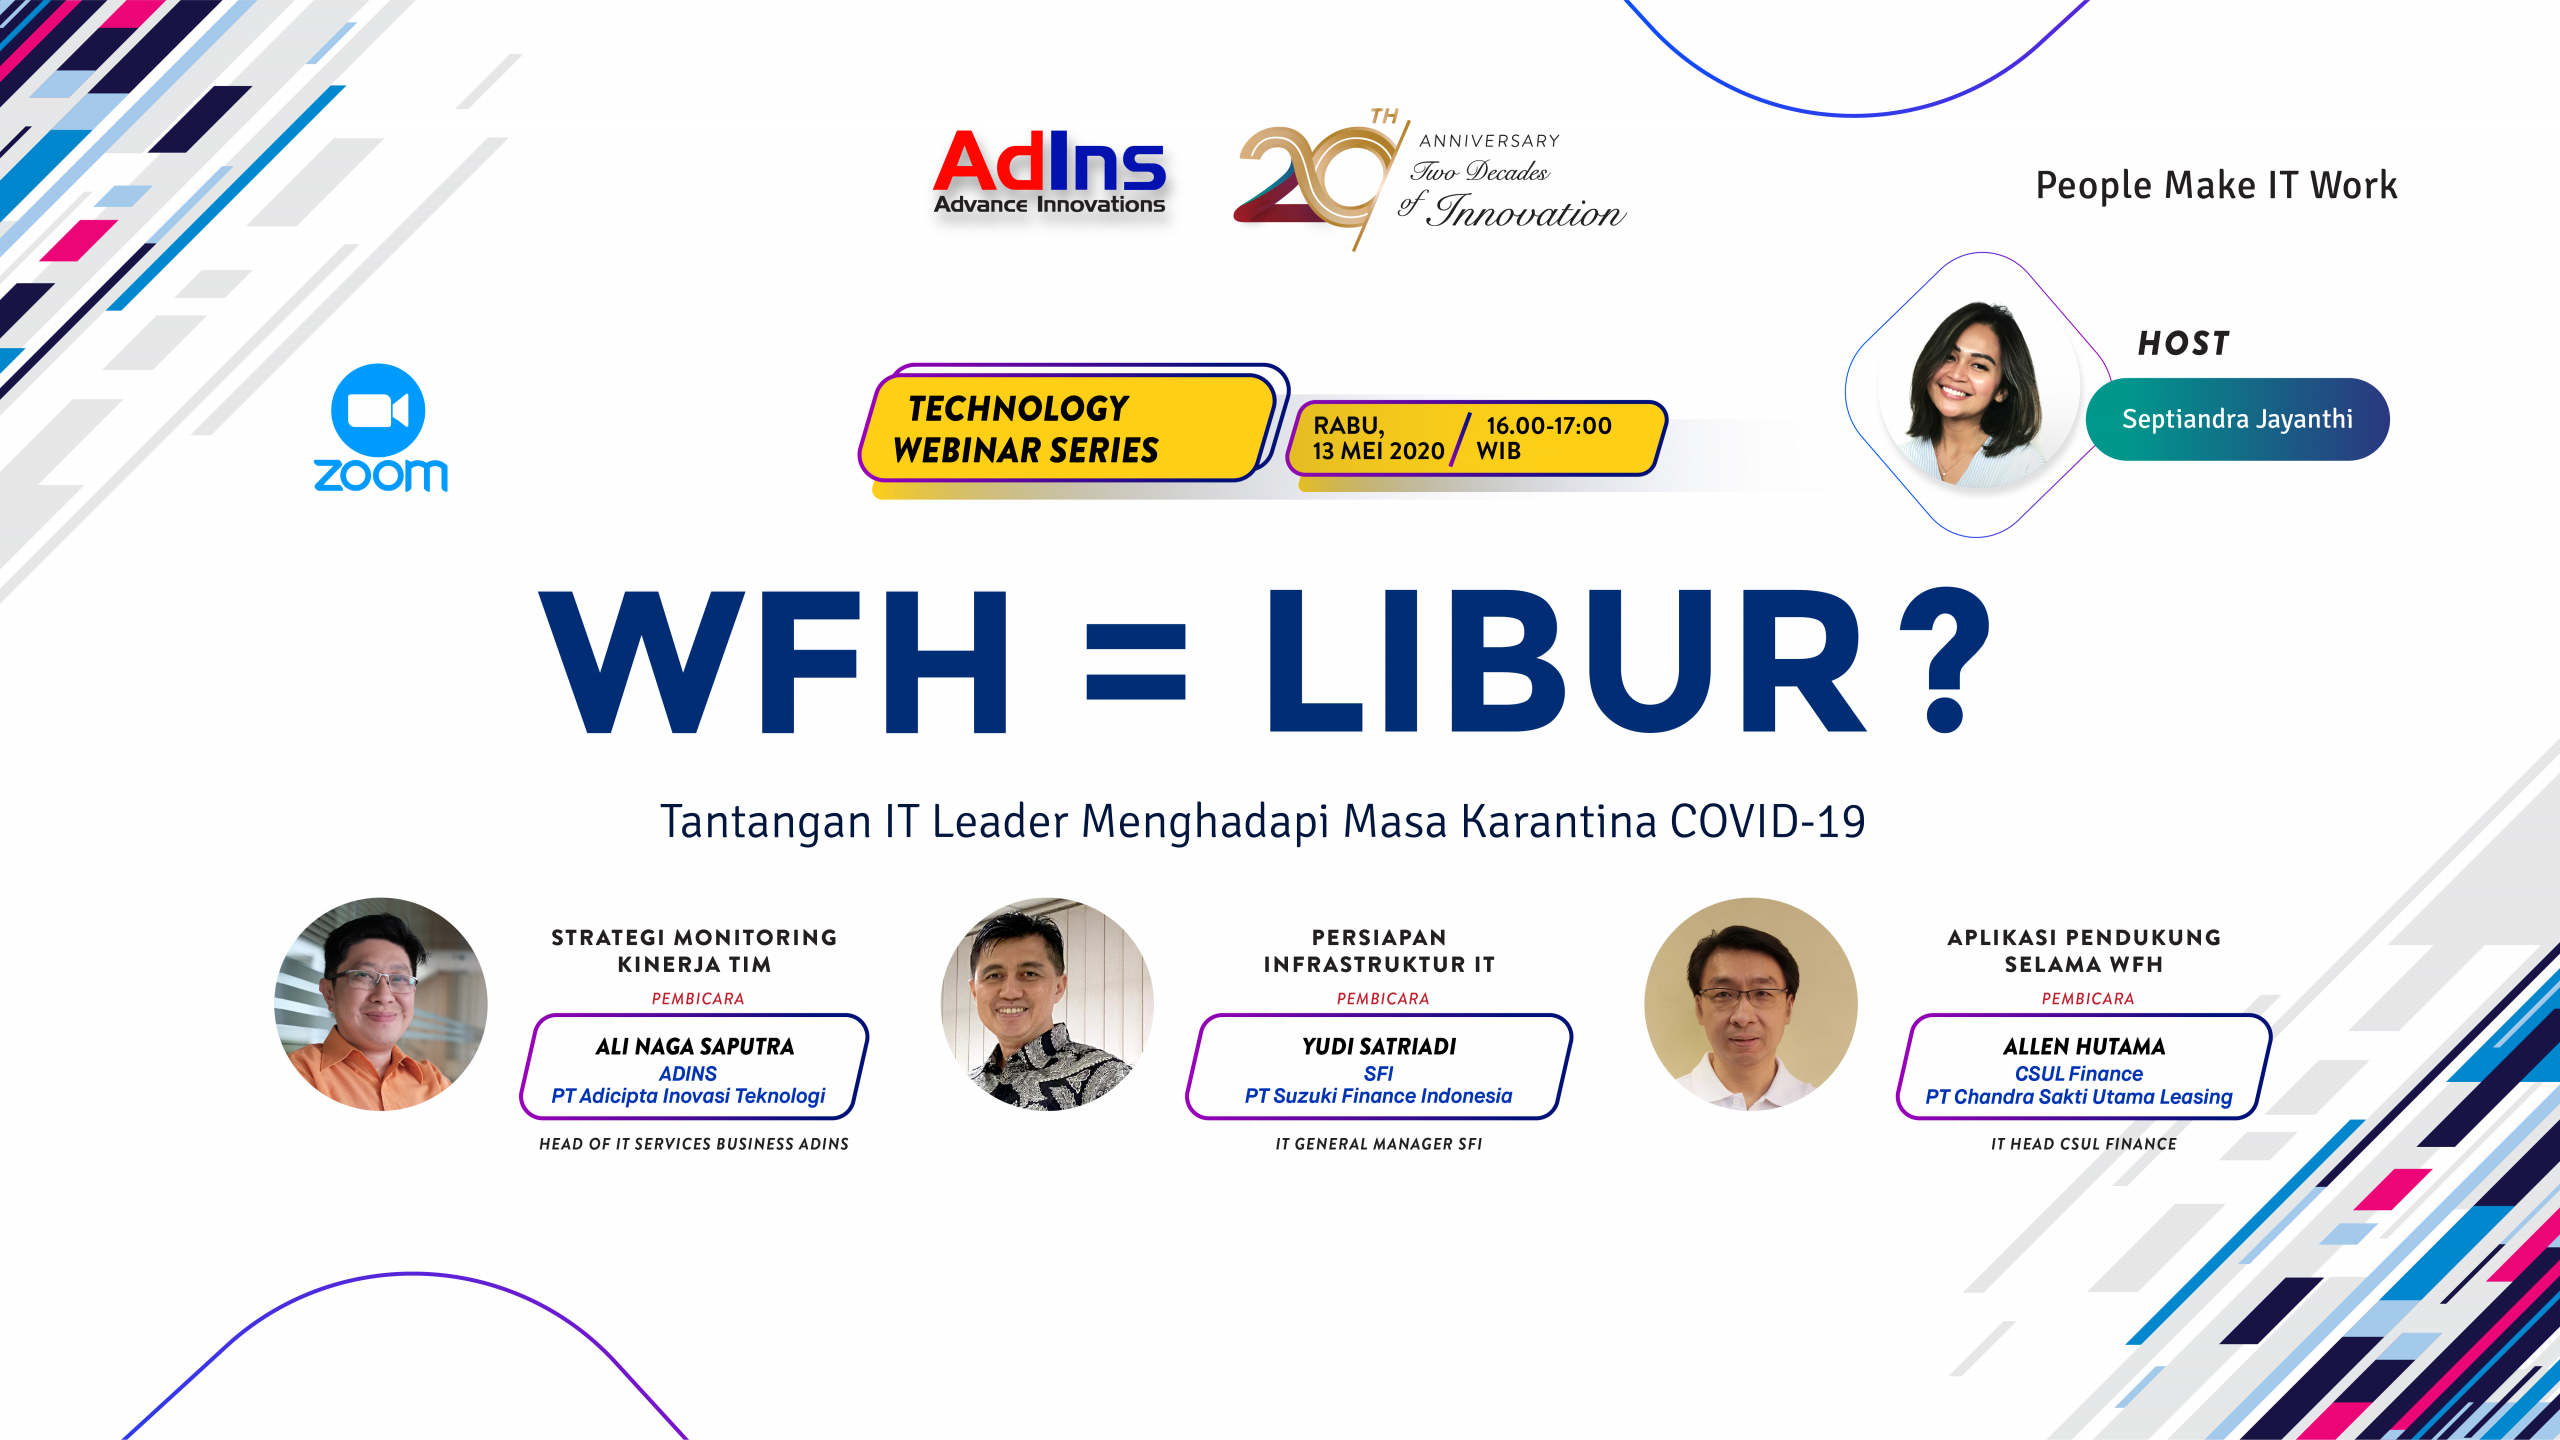 AdIns Continue to Work From Home & Holding Technology Web Seminar